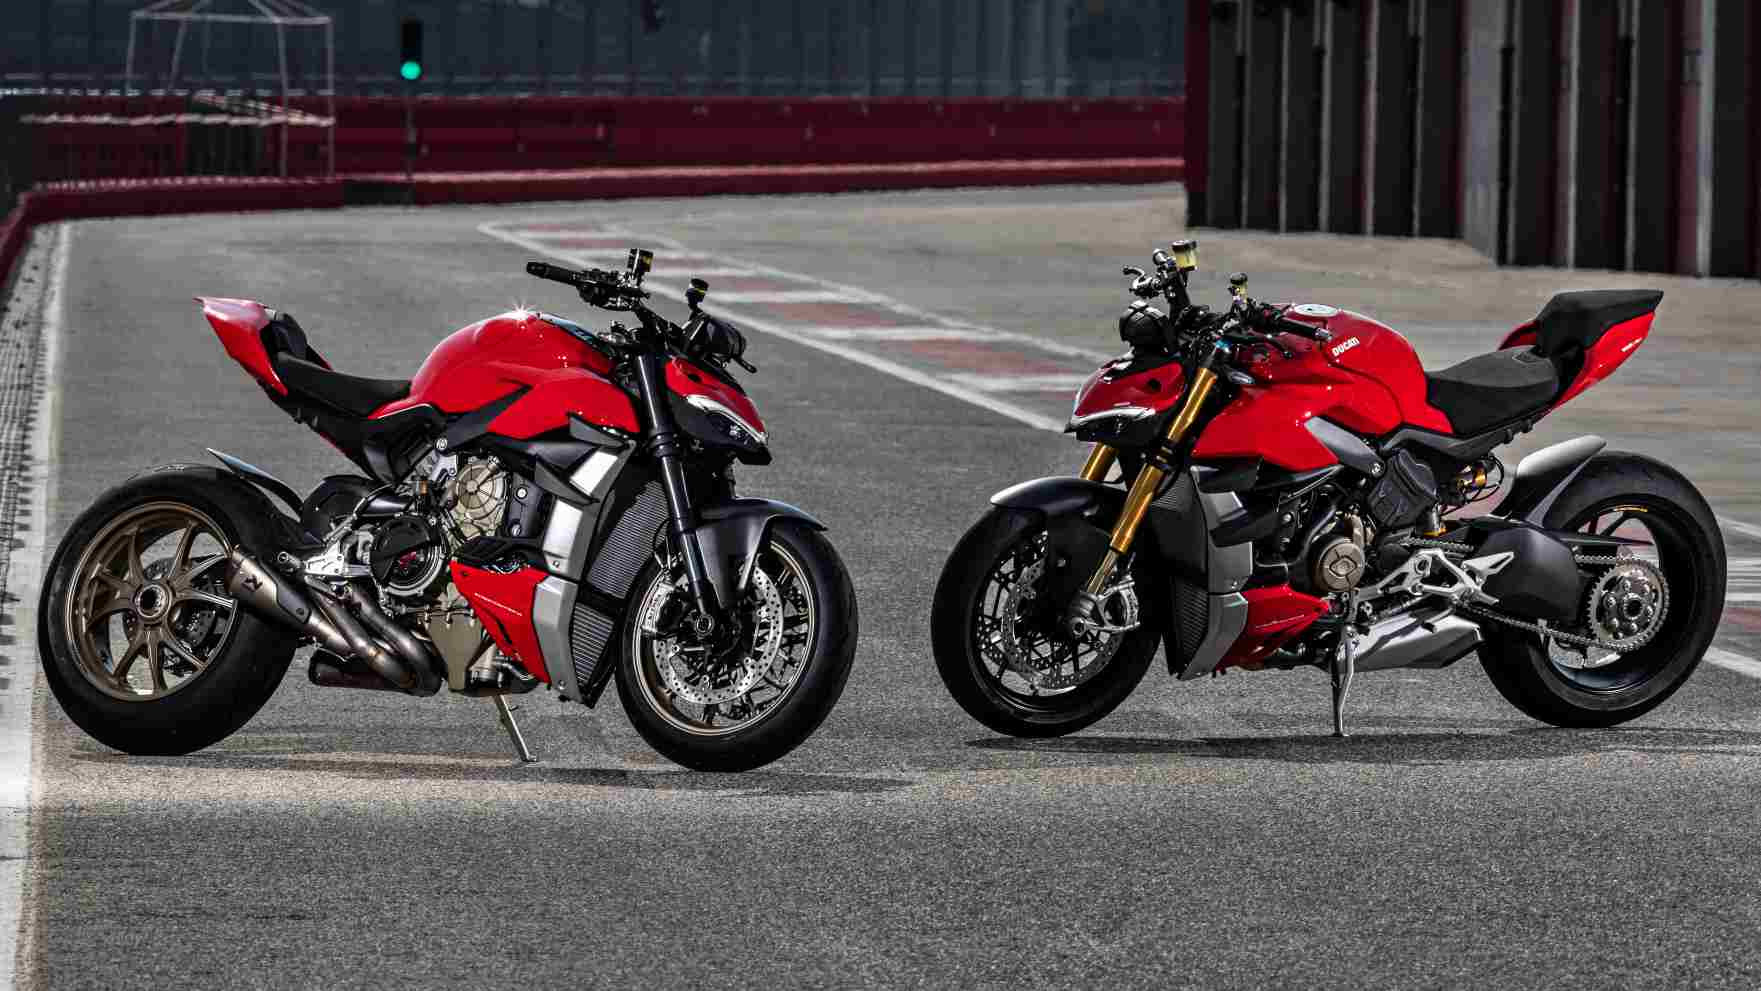 Deliveries of the Ducati Streetfighter V4 will commence in India once region-wise lockdowns are lifted. Image: Ducati